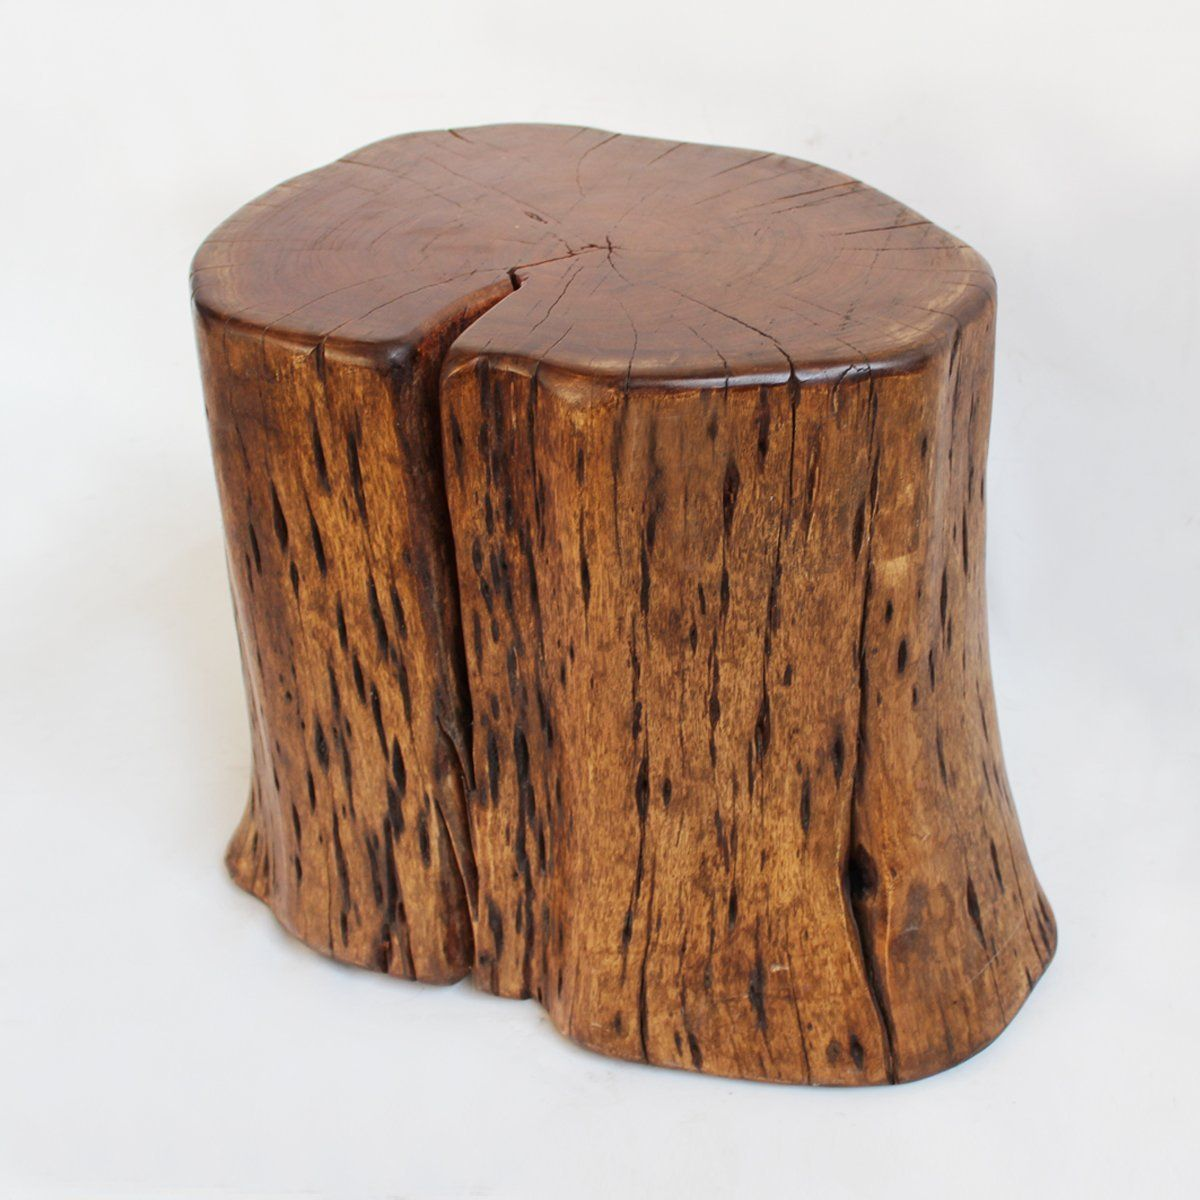 Polished Organic Kai Wood Stump Table Or Stool. Rich Wood Grain With Hard  Waxed Finish